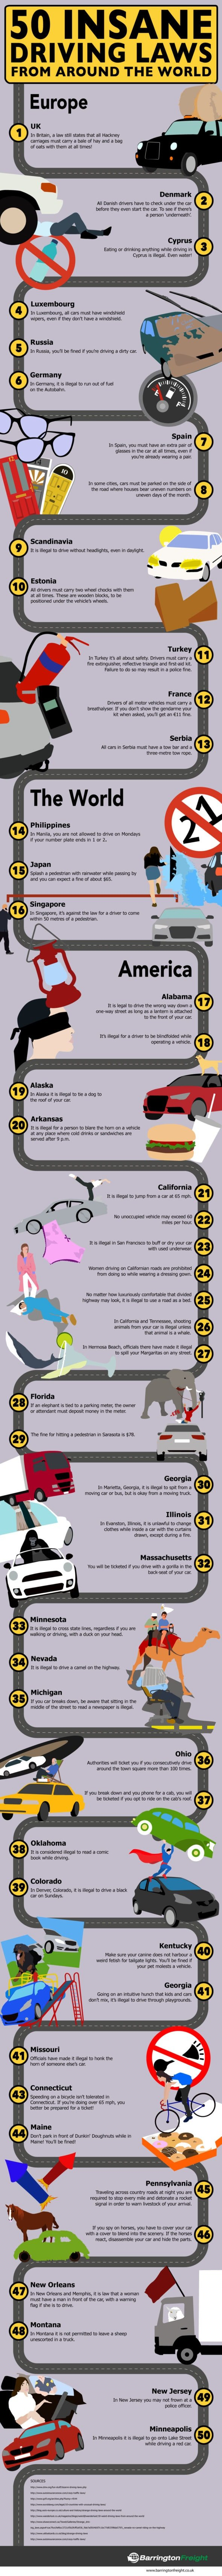 Infographic: 50 Insane Driving Laws From Around The World